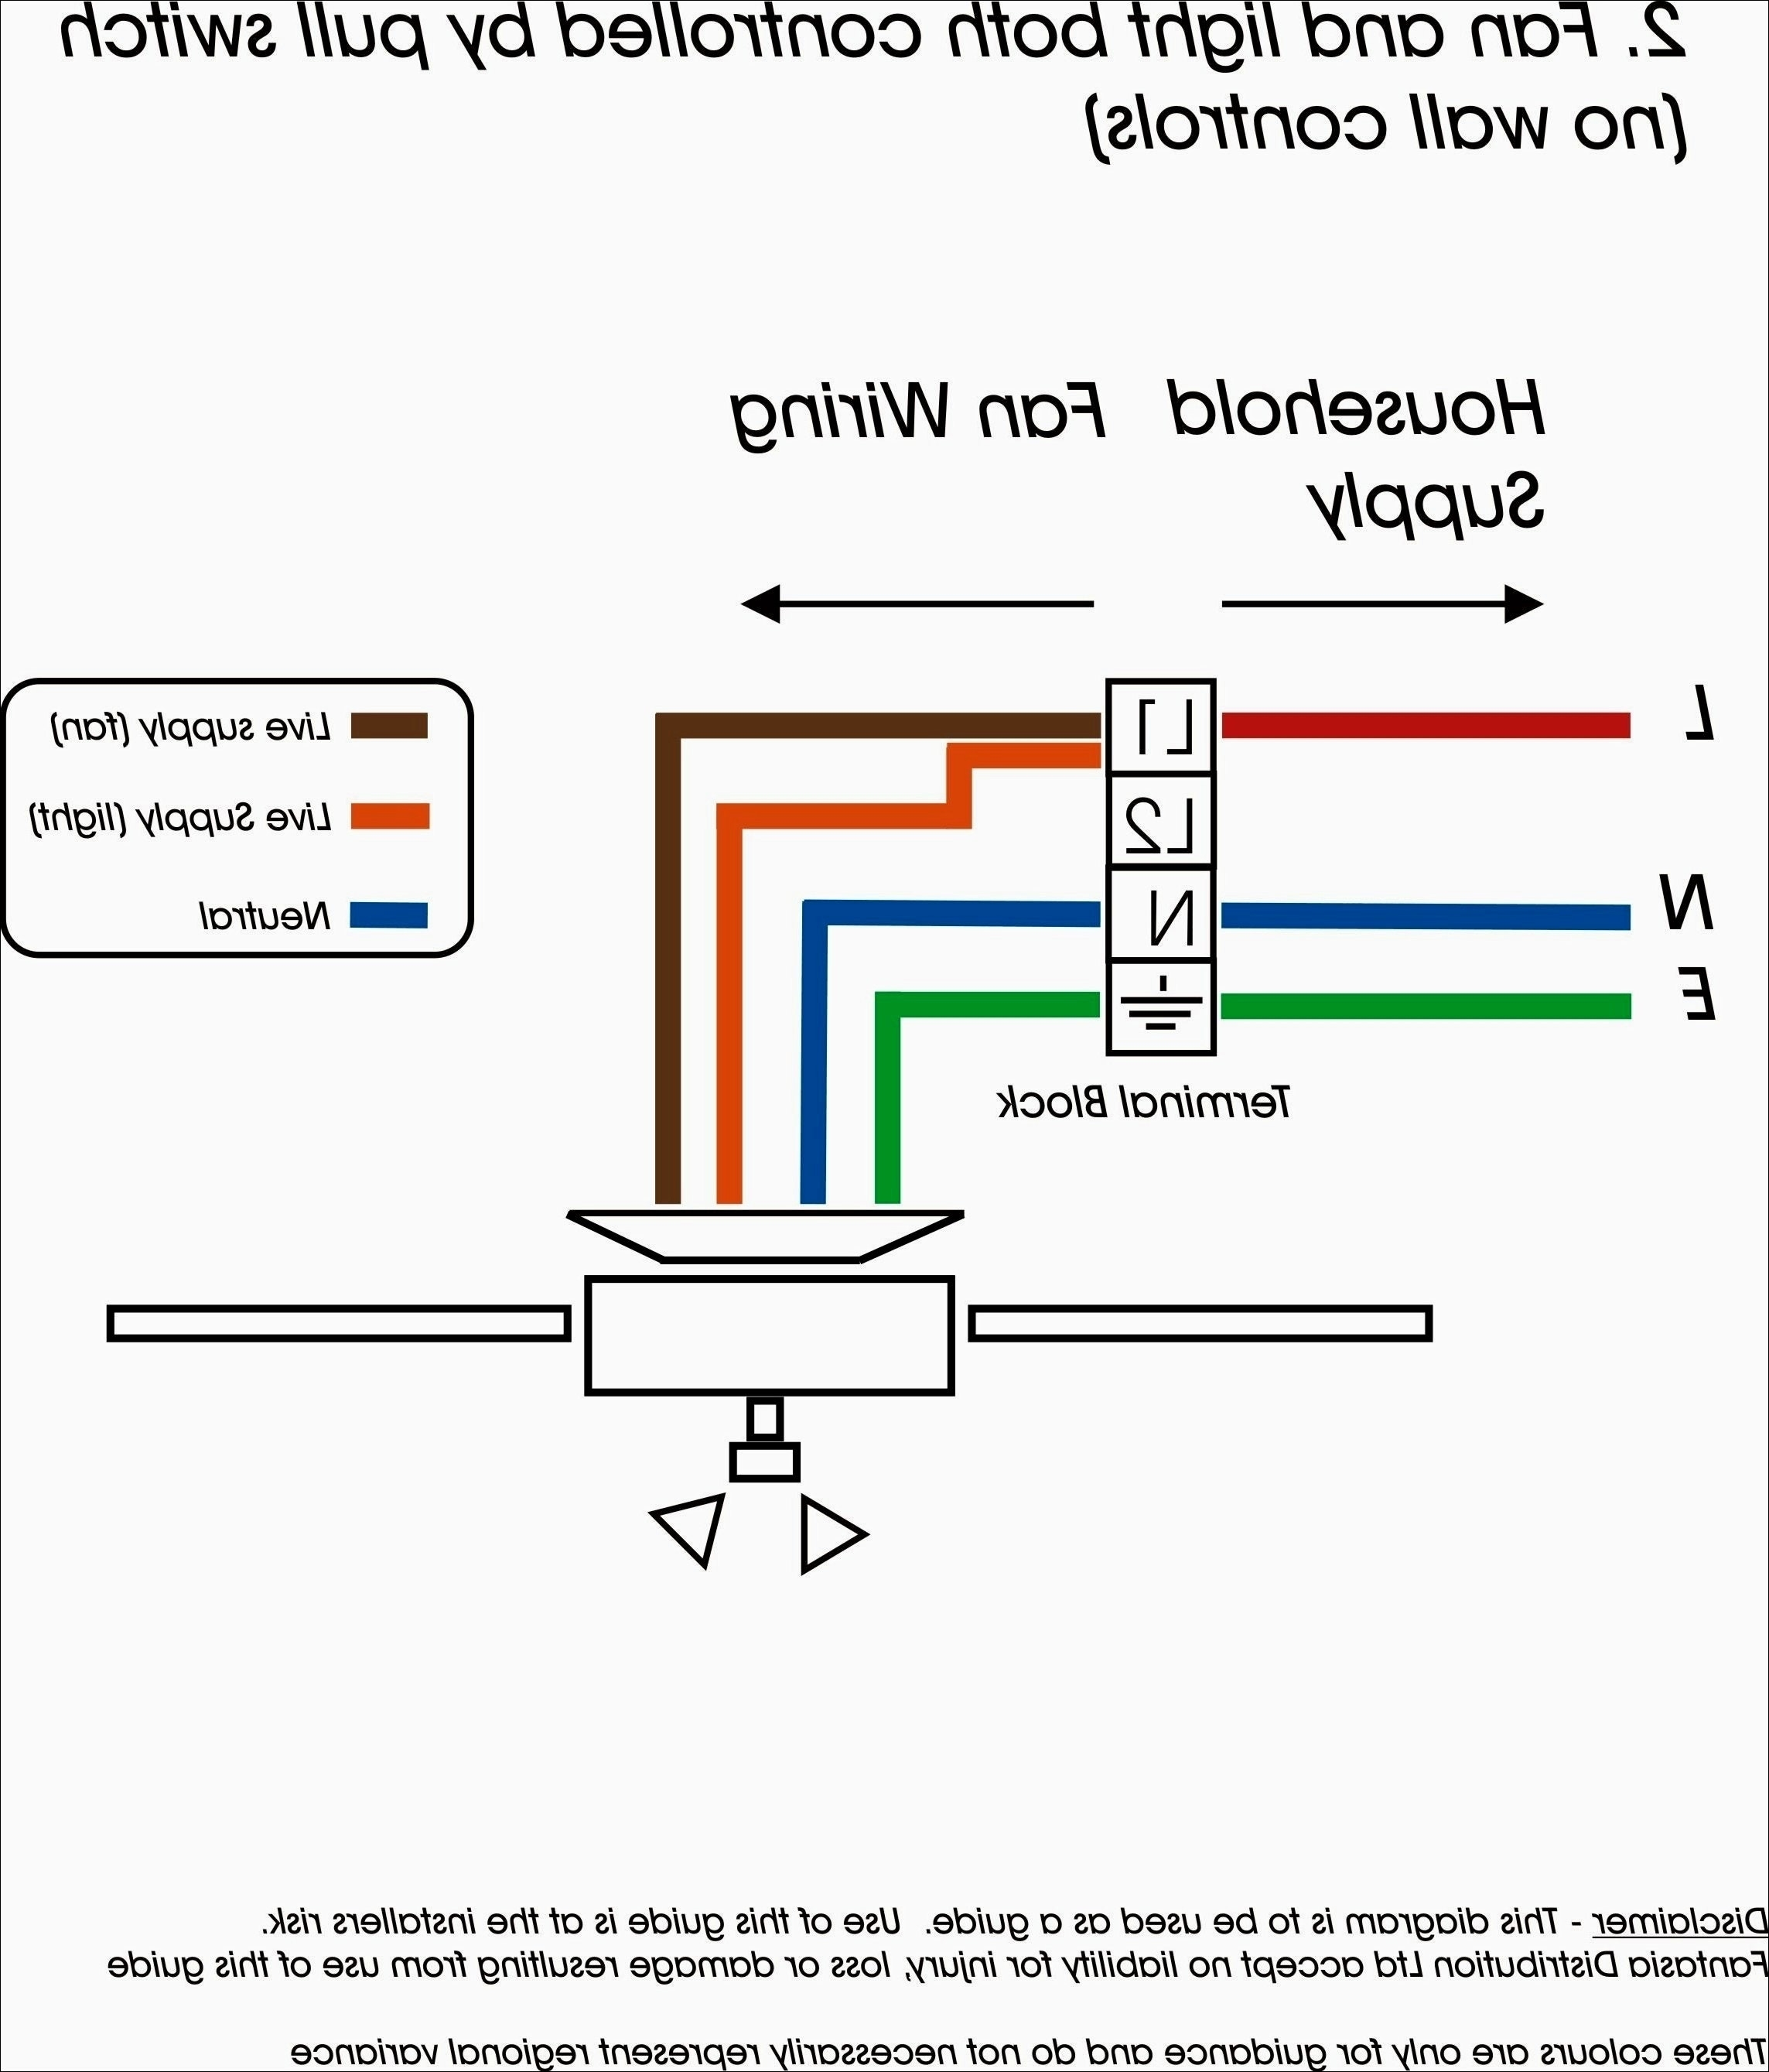 fluorescent ballast wiring diagram Download-Wiring Diagram for Fluorescent Light Fixture New Fluorescent Light Wiring Diagram Fresh Wiring Diagram for Light 20-s